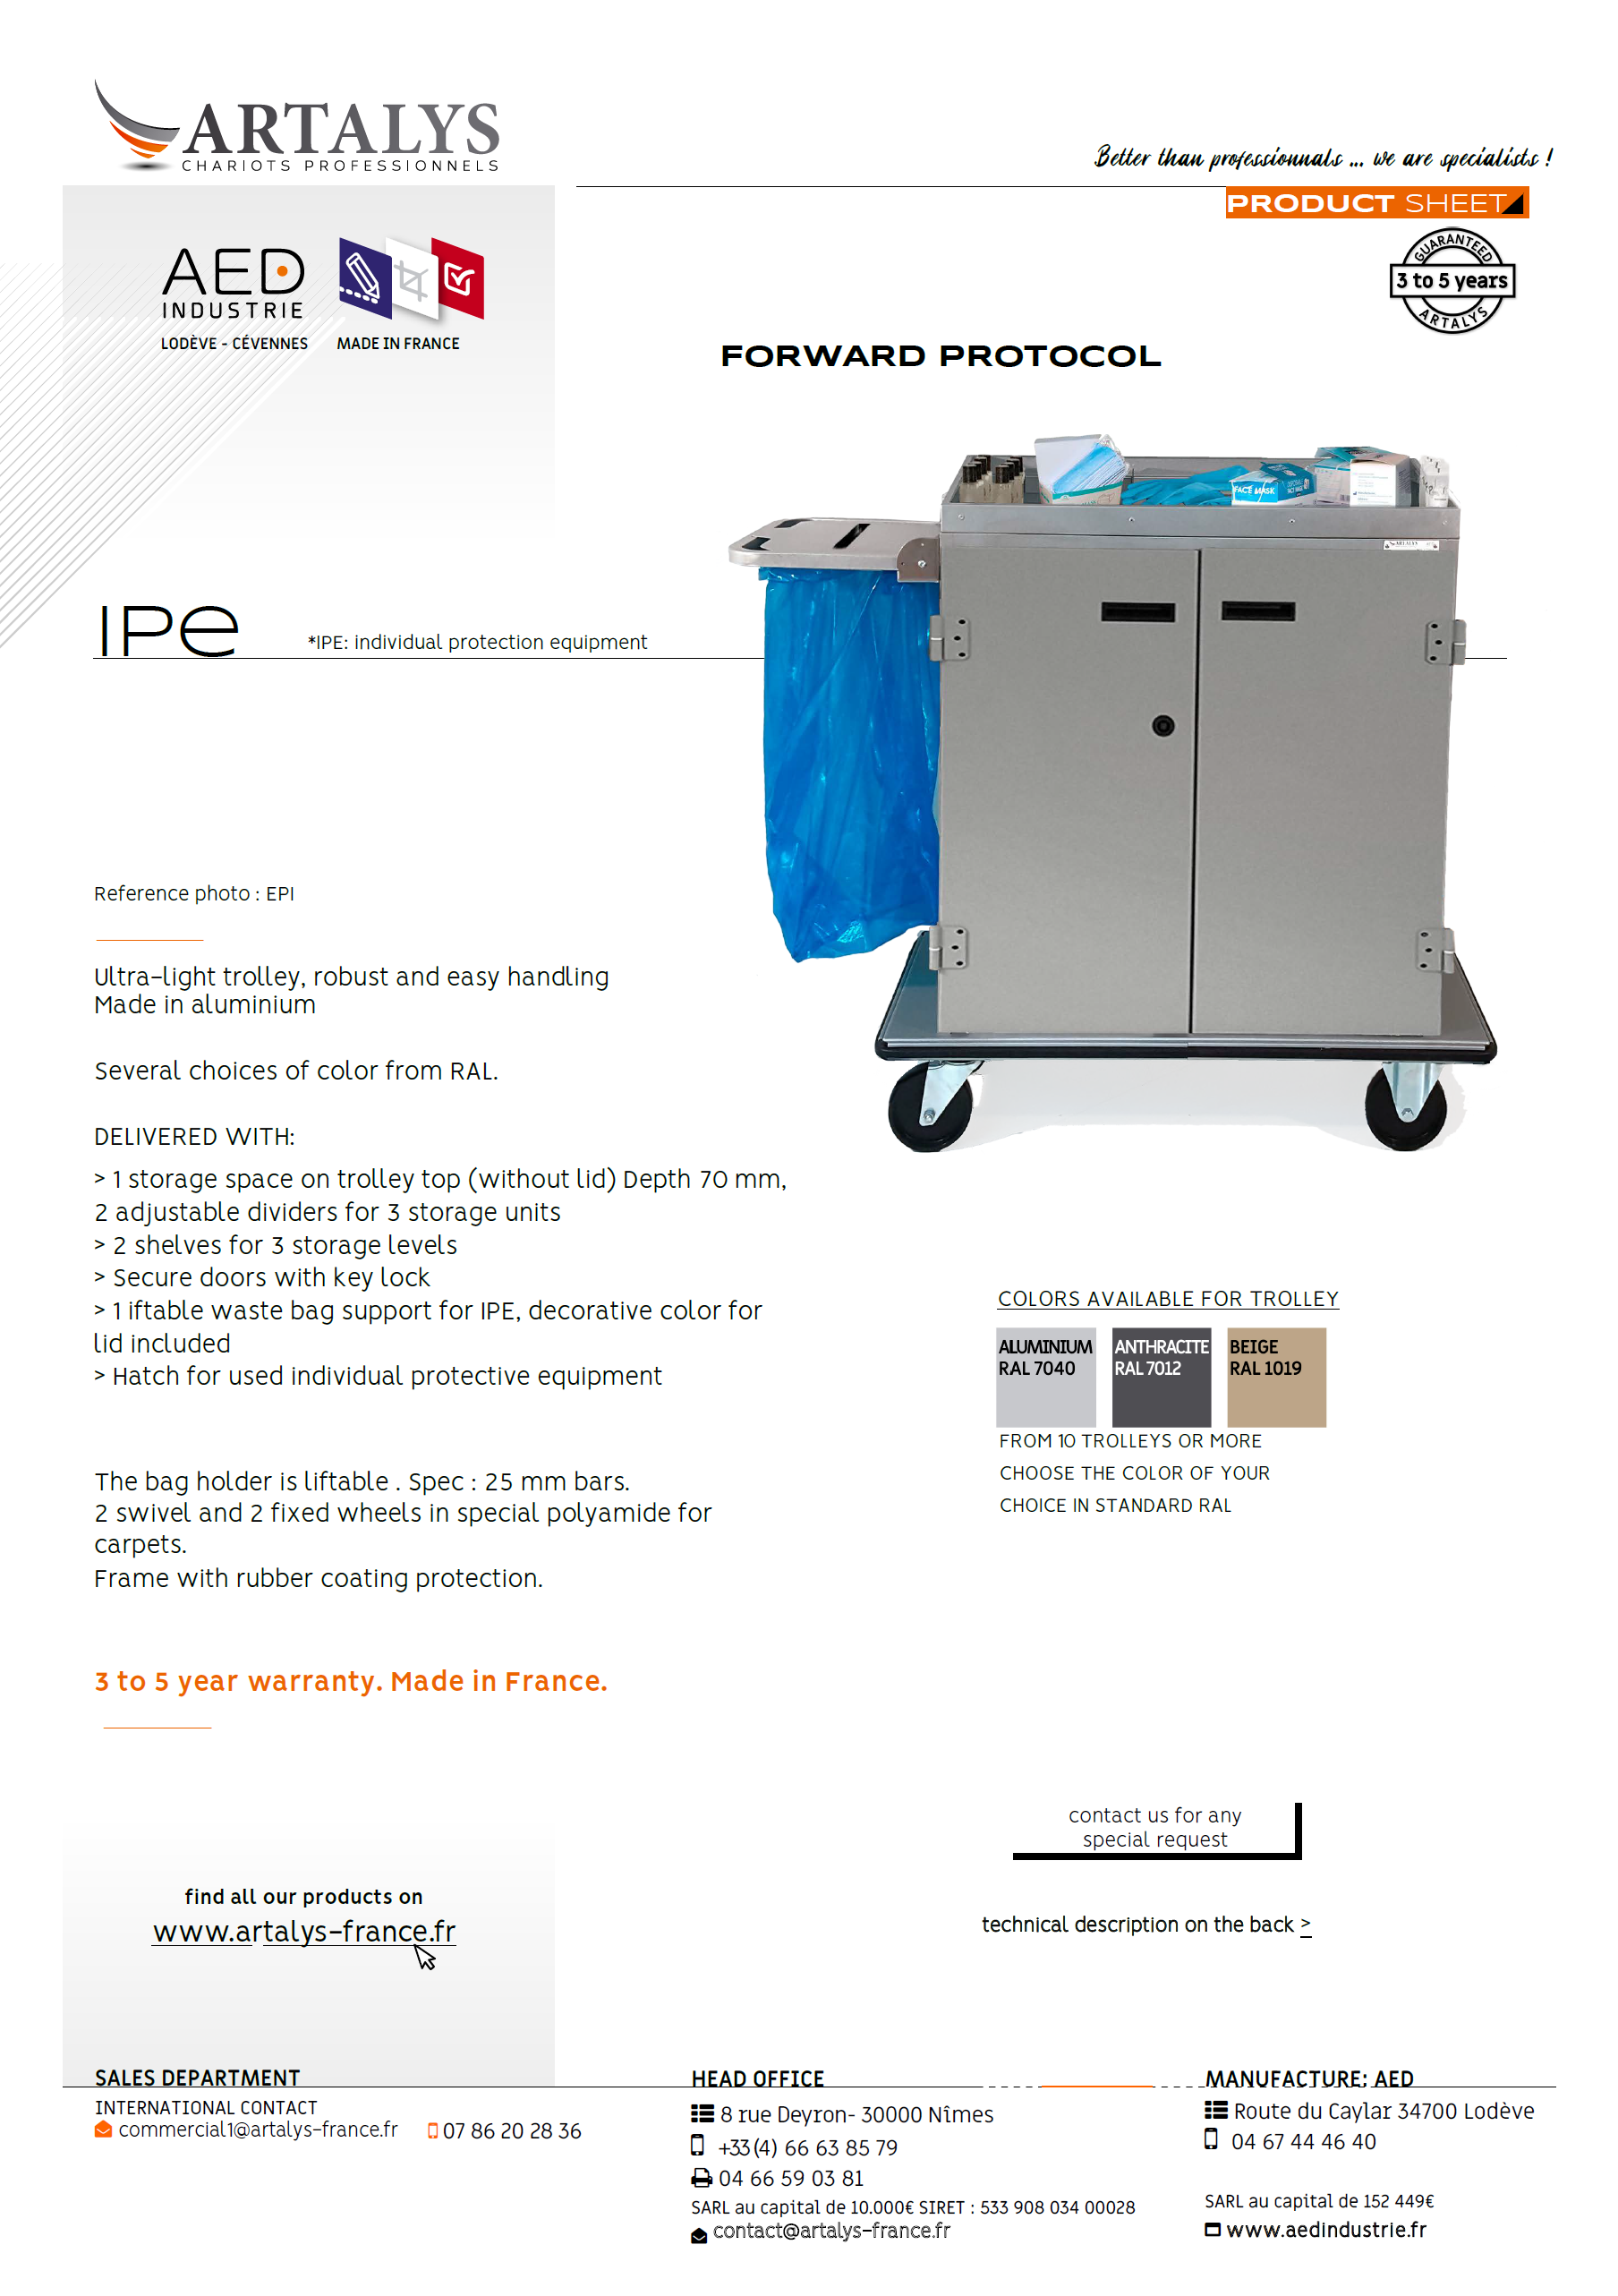 Product sheet of our IPE disinfection trolley